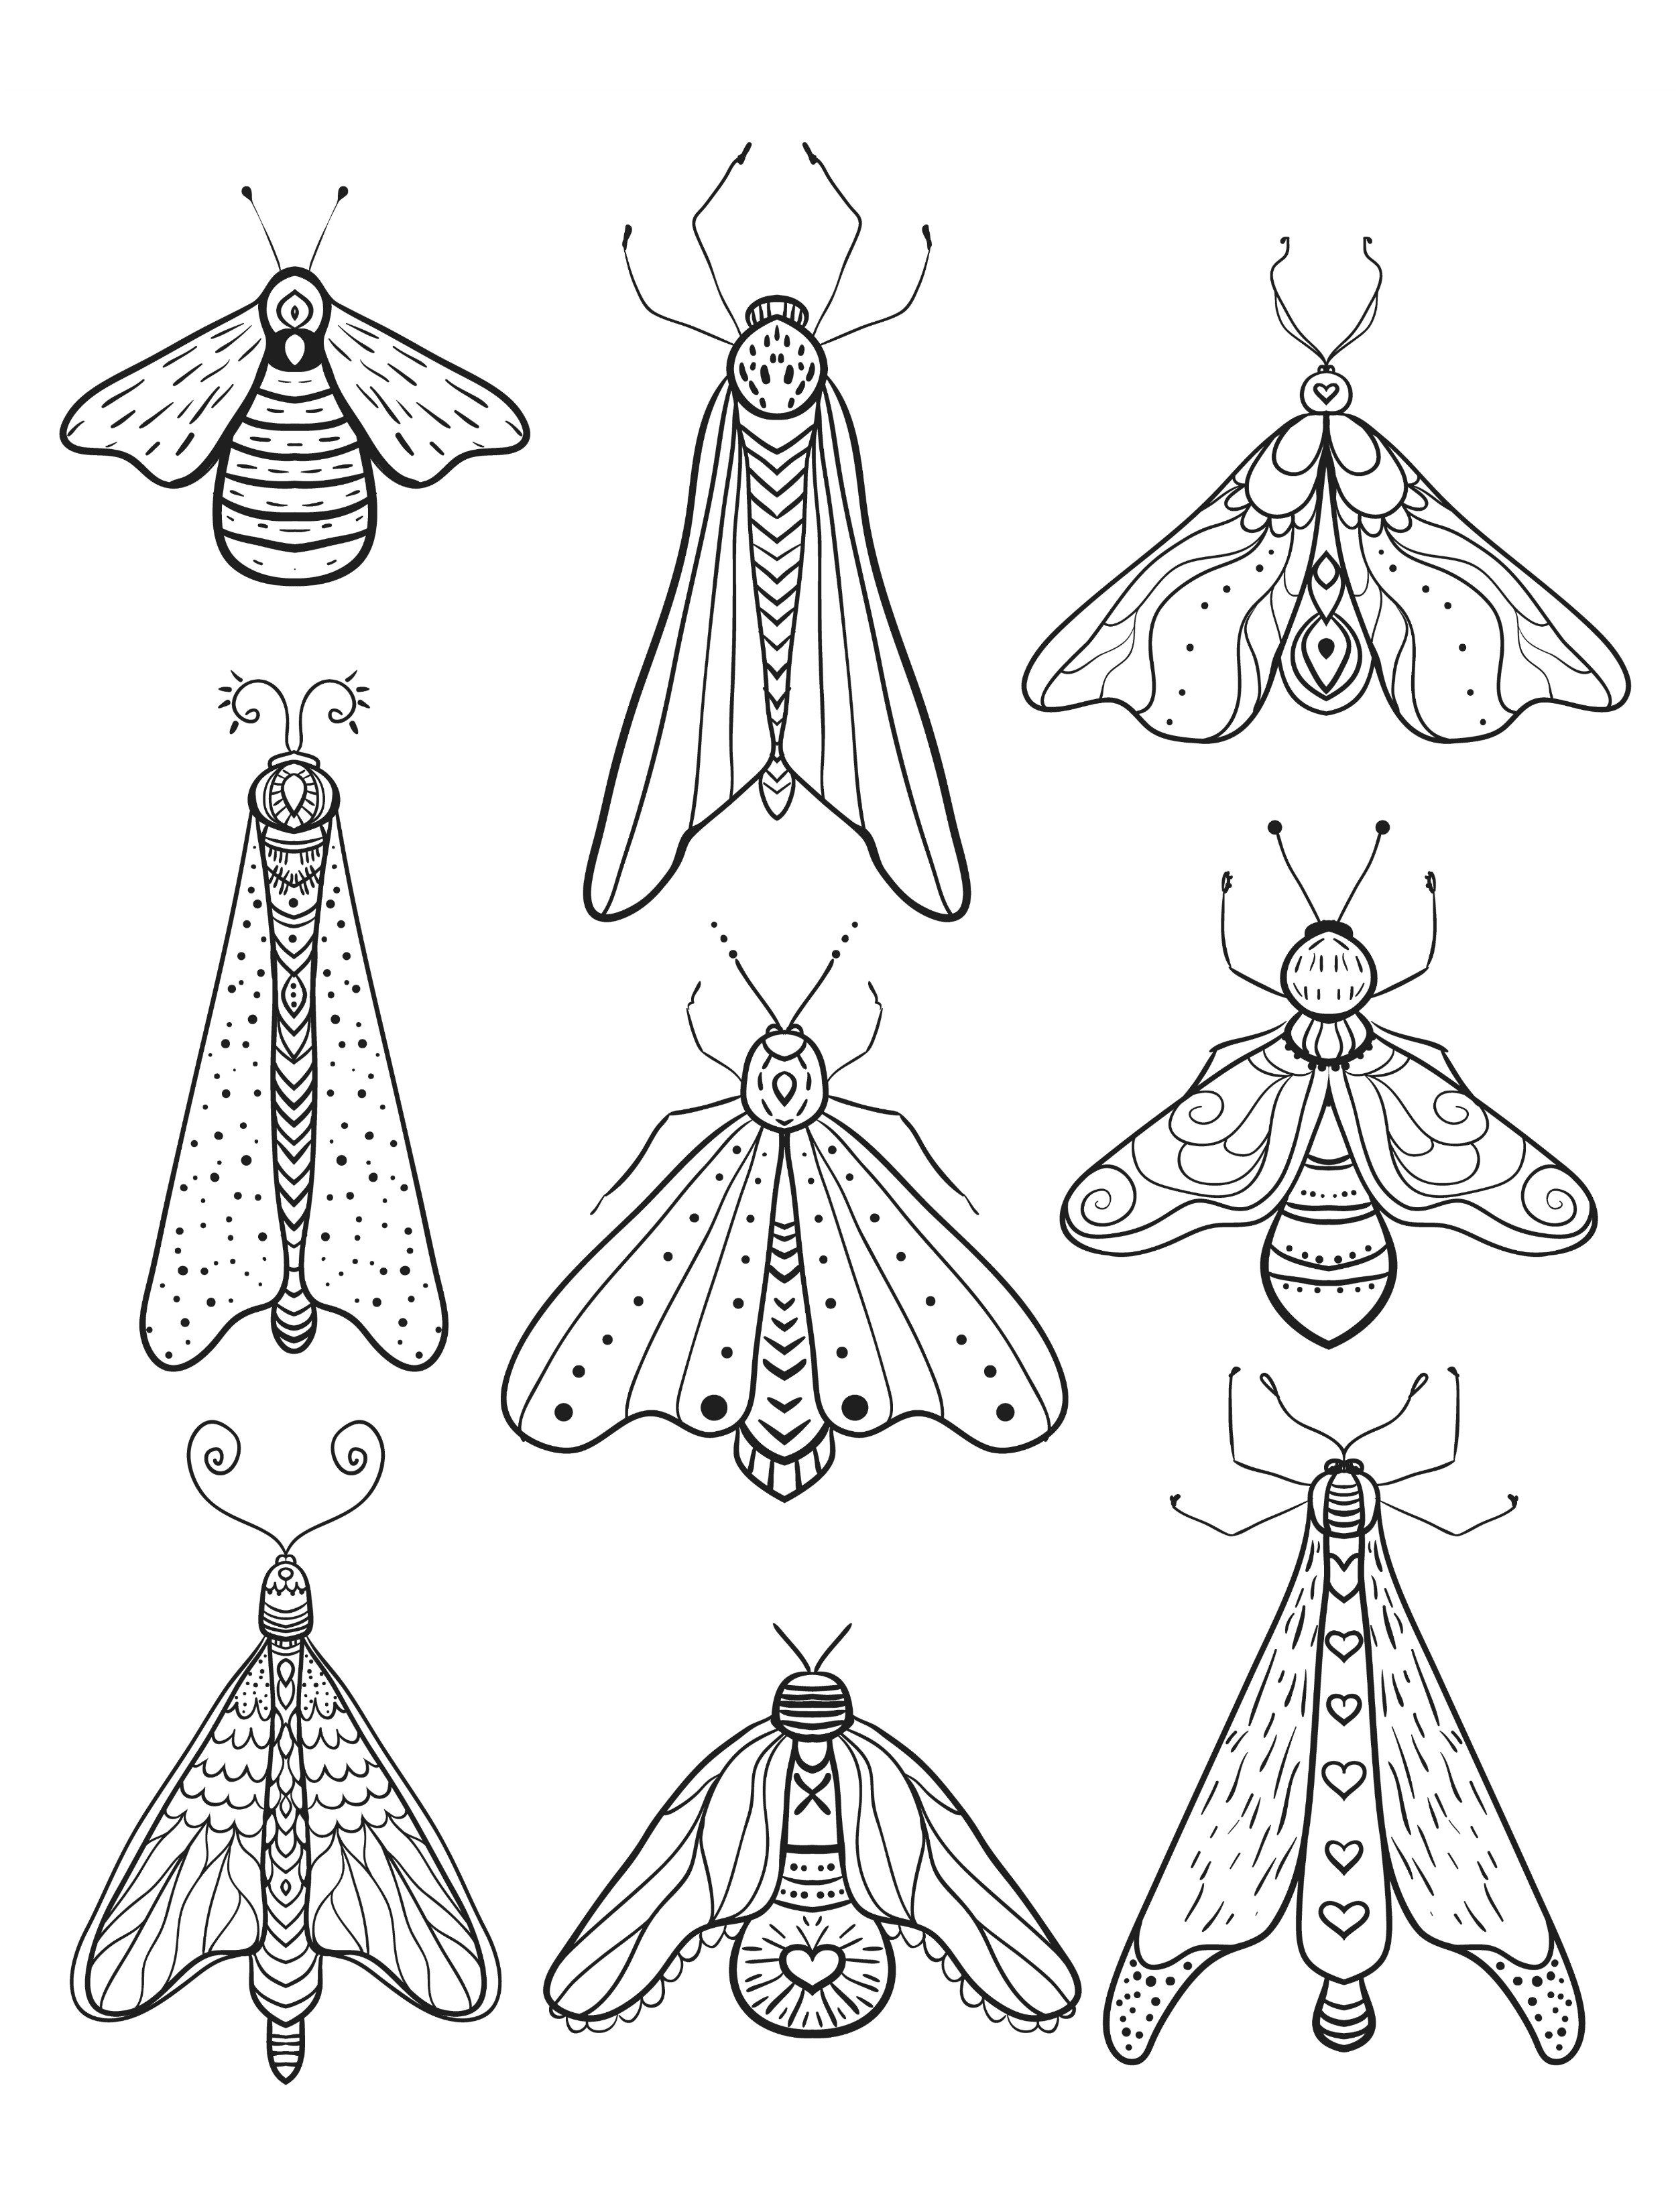 23 Free Printable Insect & Animal Adult Coloring Pages Page 10 of 24